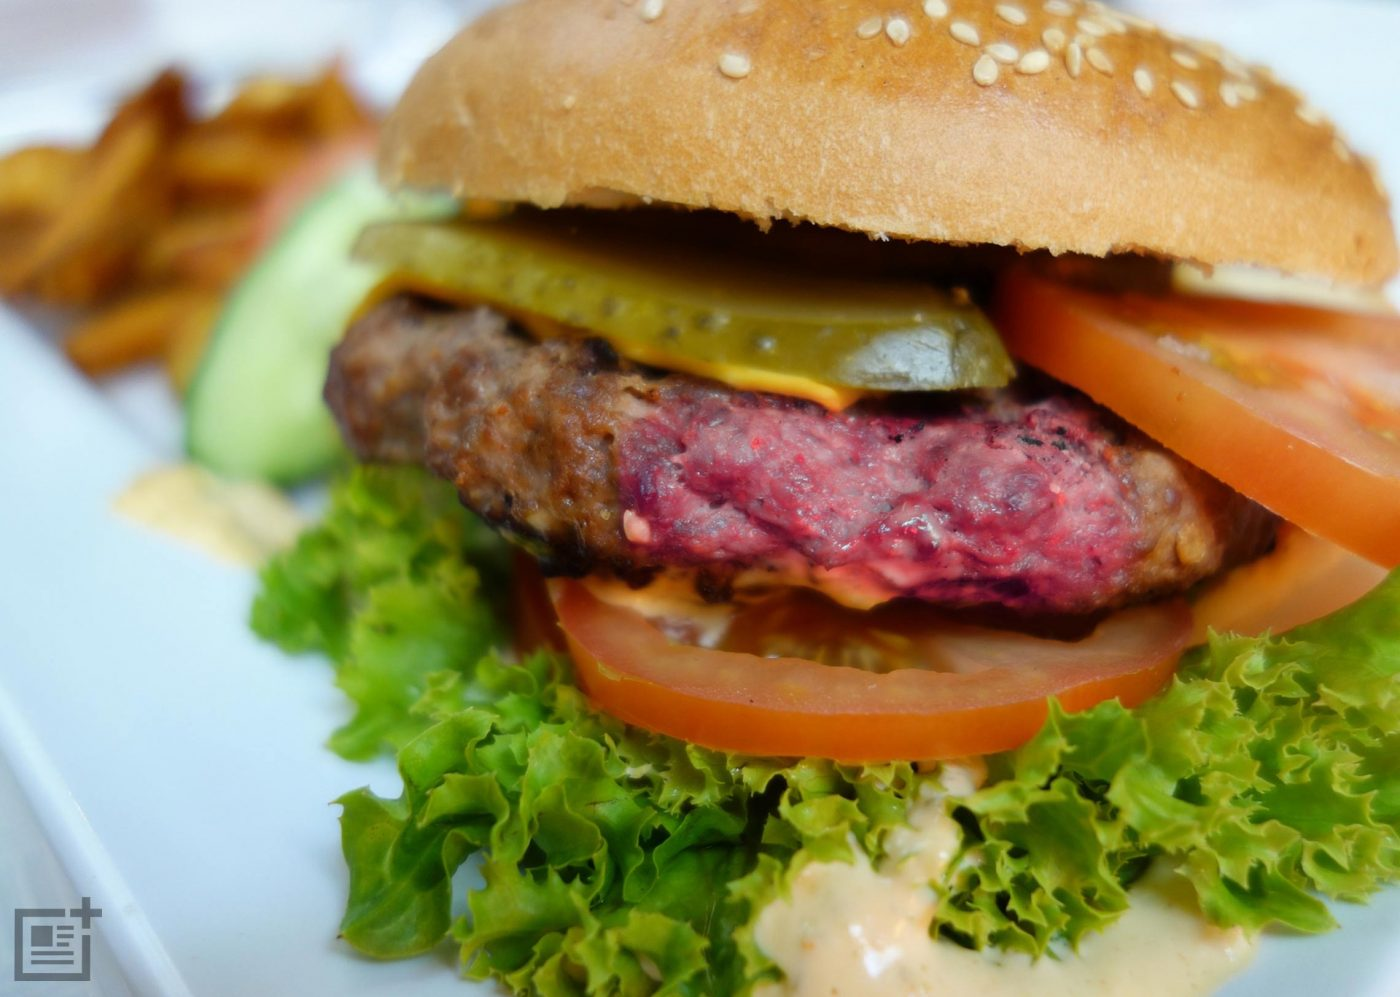 Don't Eat Burgers That Are Pink In The Middle - Health Units